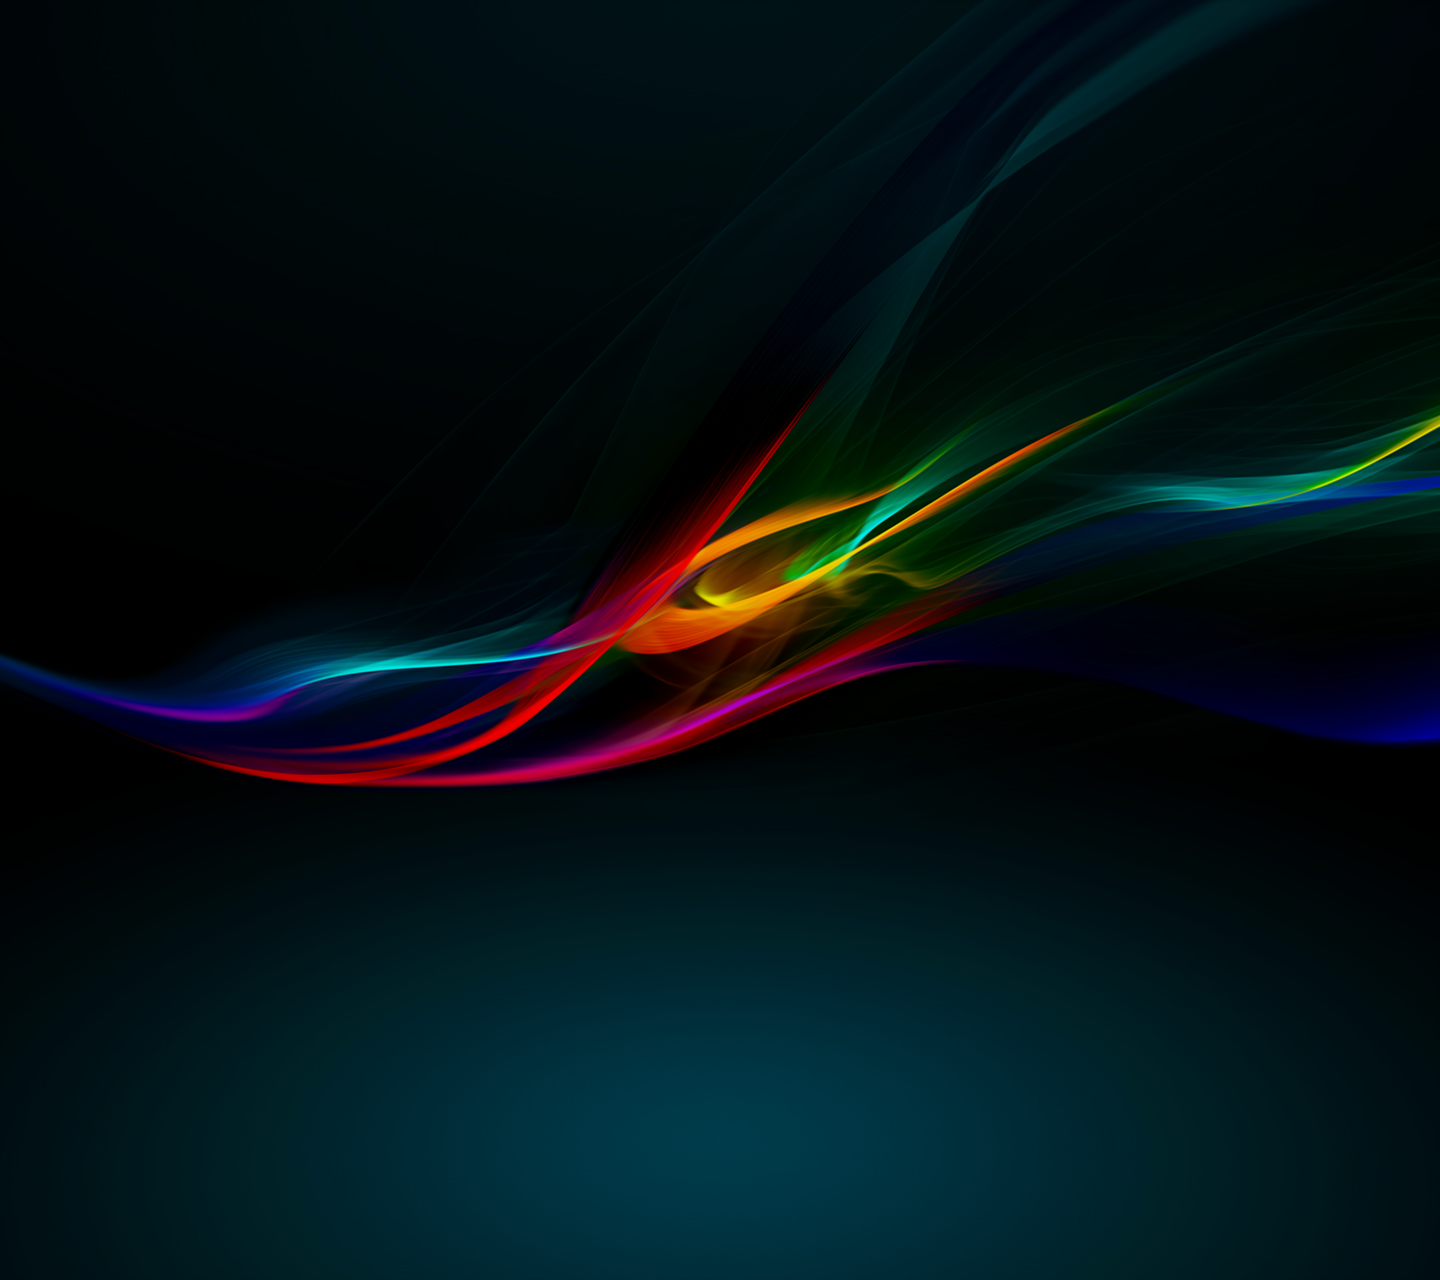 Sony Xperia Z Abstract HD Wallpapers